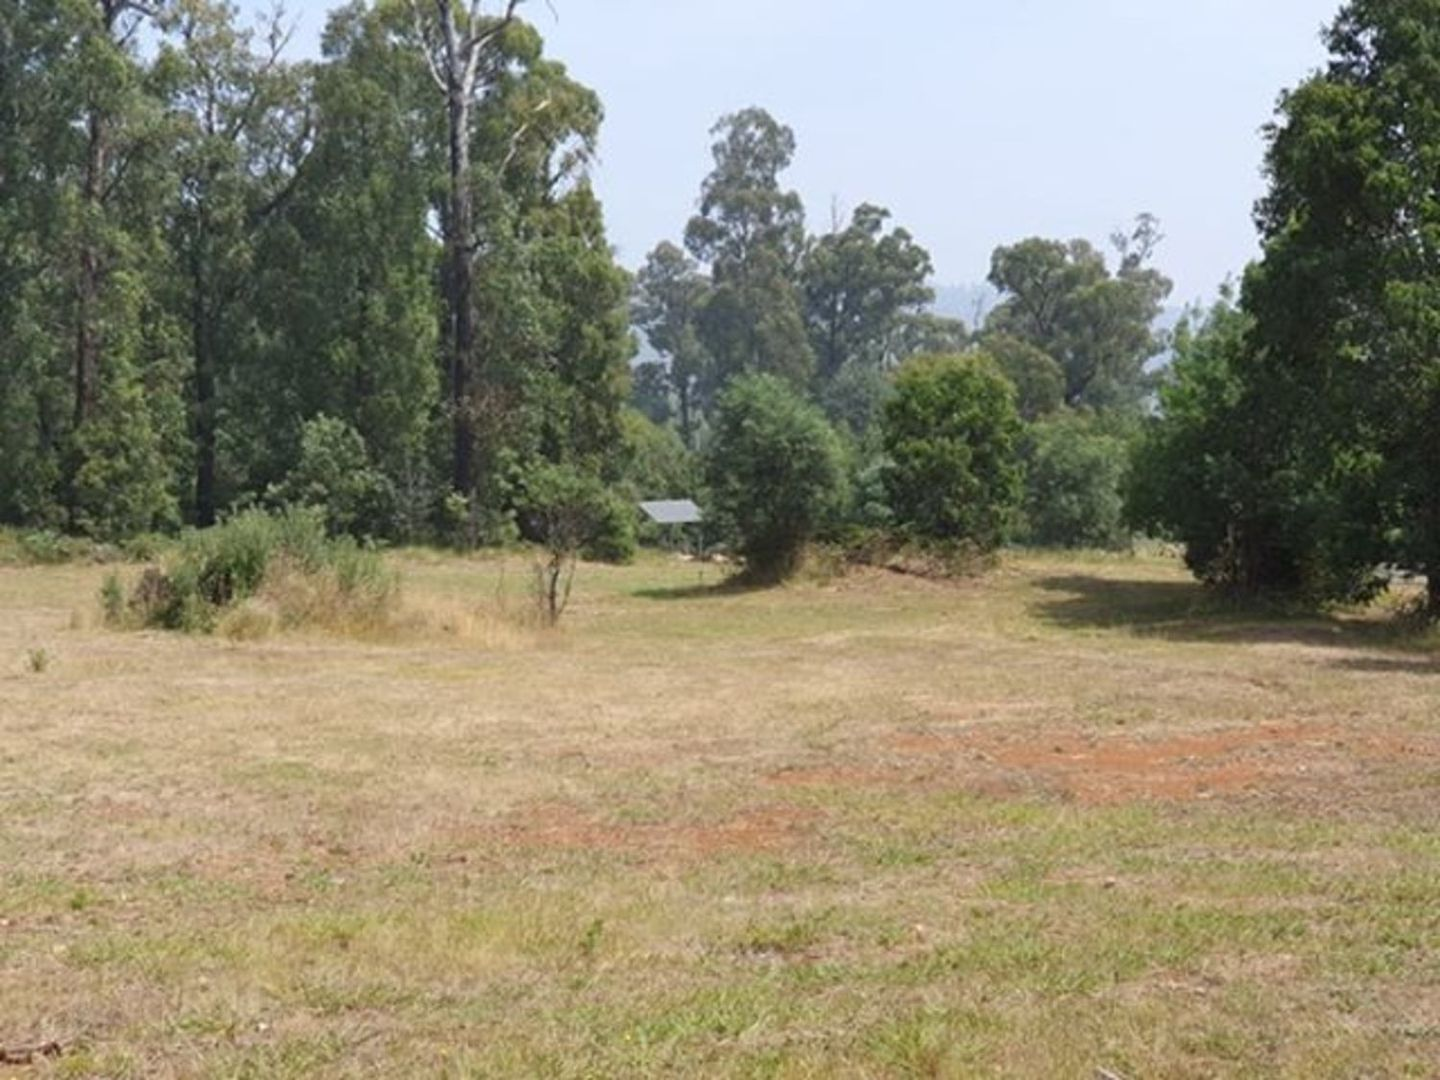 Lot 2/32 Kings Road, Marysville VIC 3779, Image 1